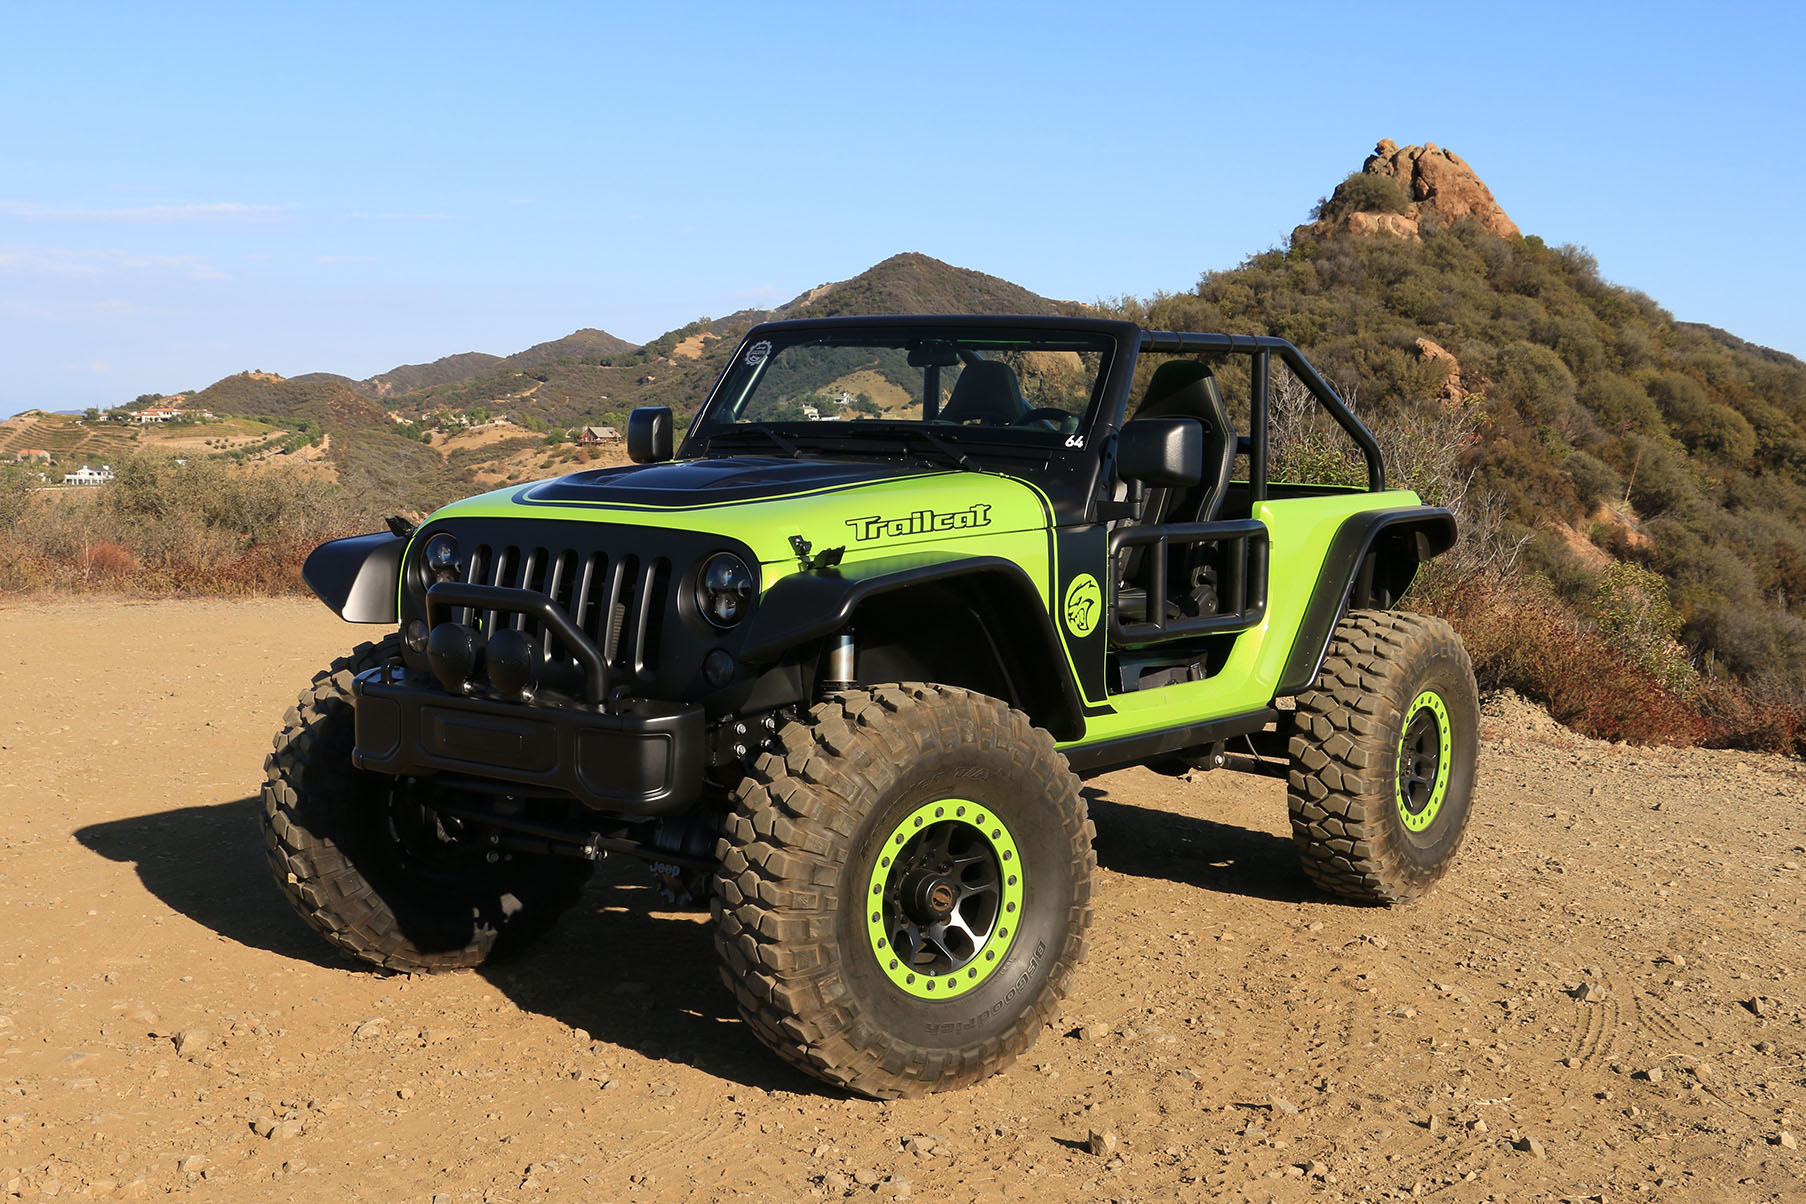 Wallpaper Engine Power Girl Behind The Wheel Of The 707 Hp Jeep Trailcat Concept